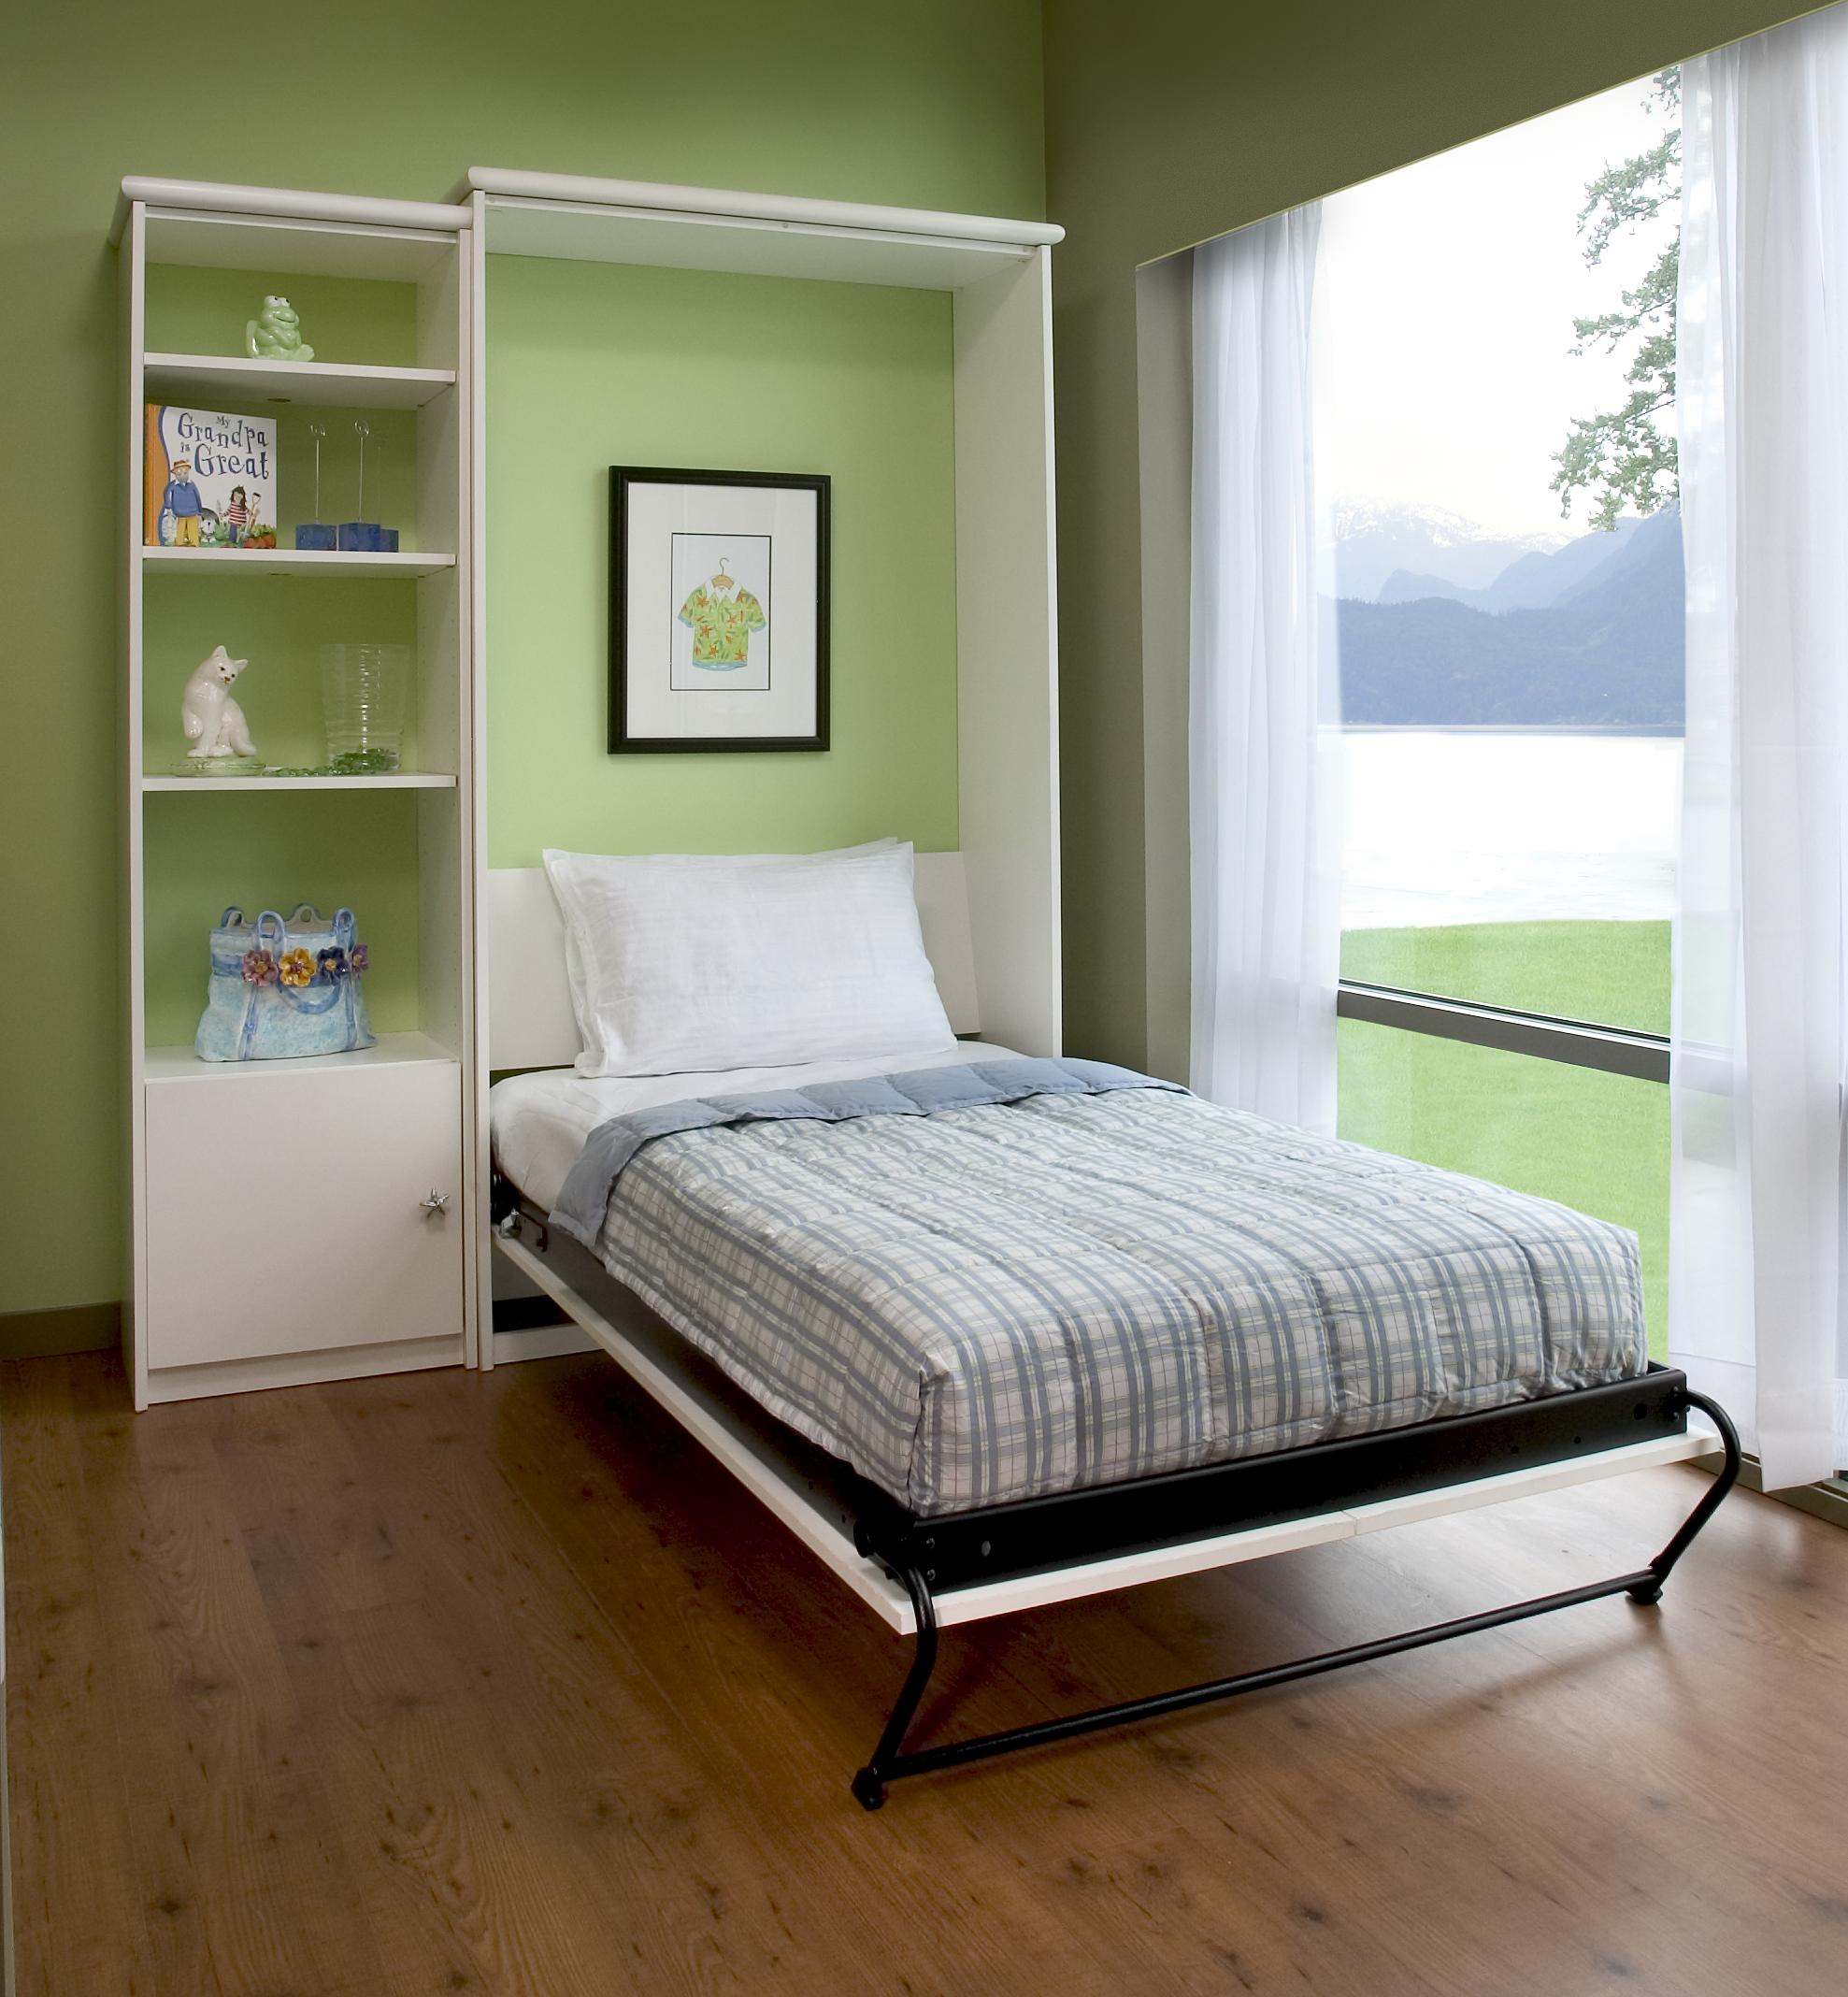 Images For Murphy Beds : Price